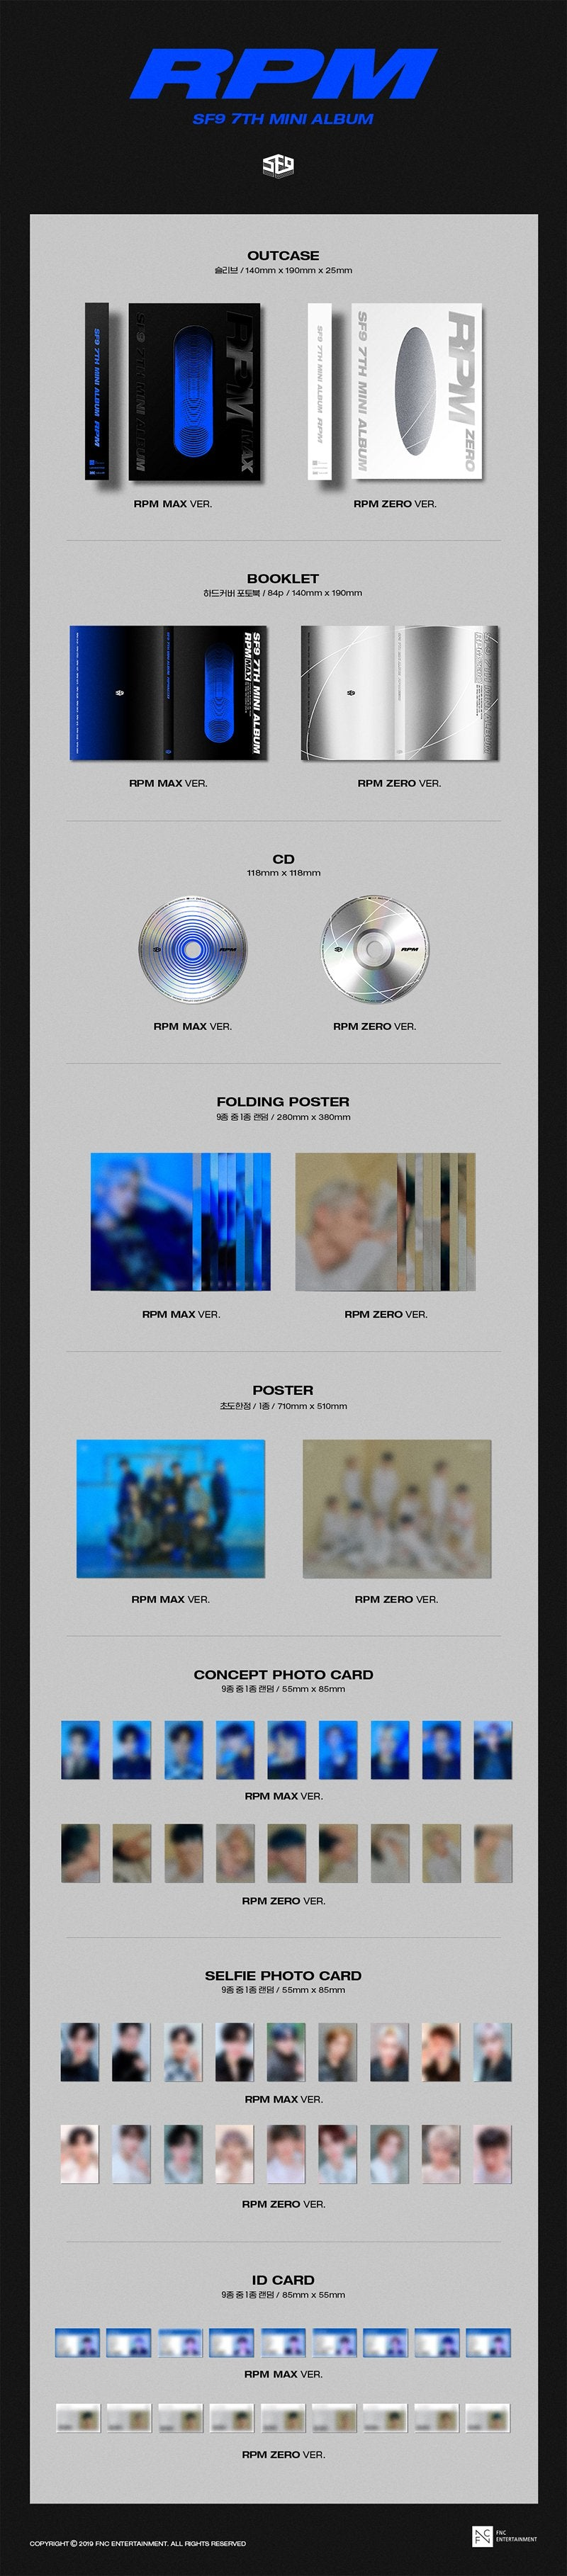 Image result for sf9 rpm posters